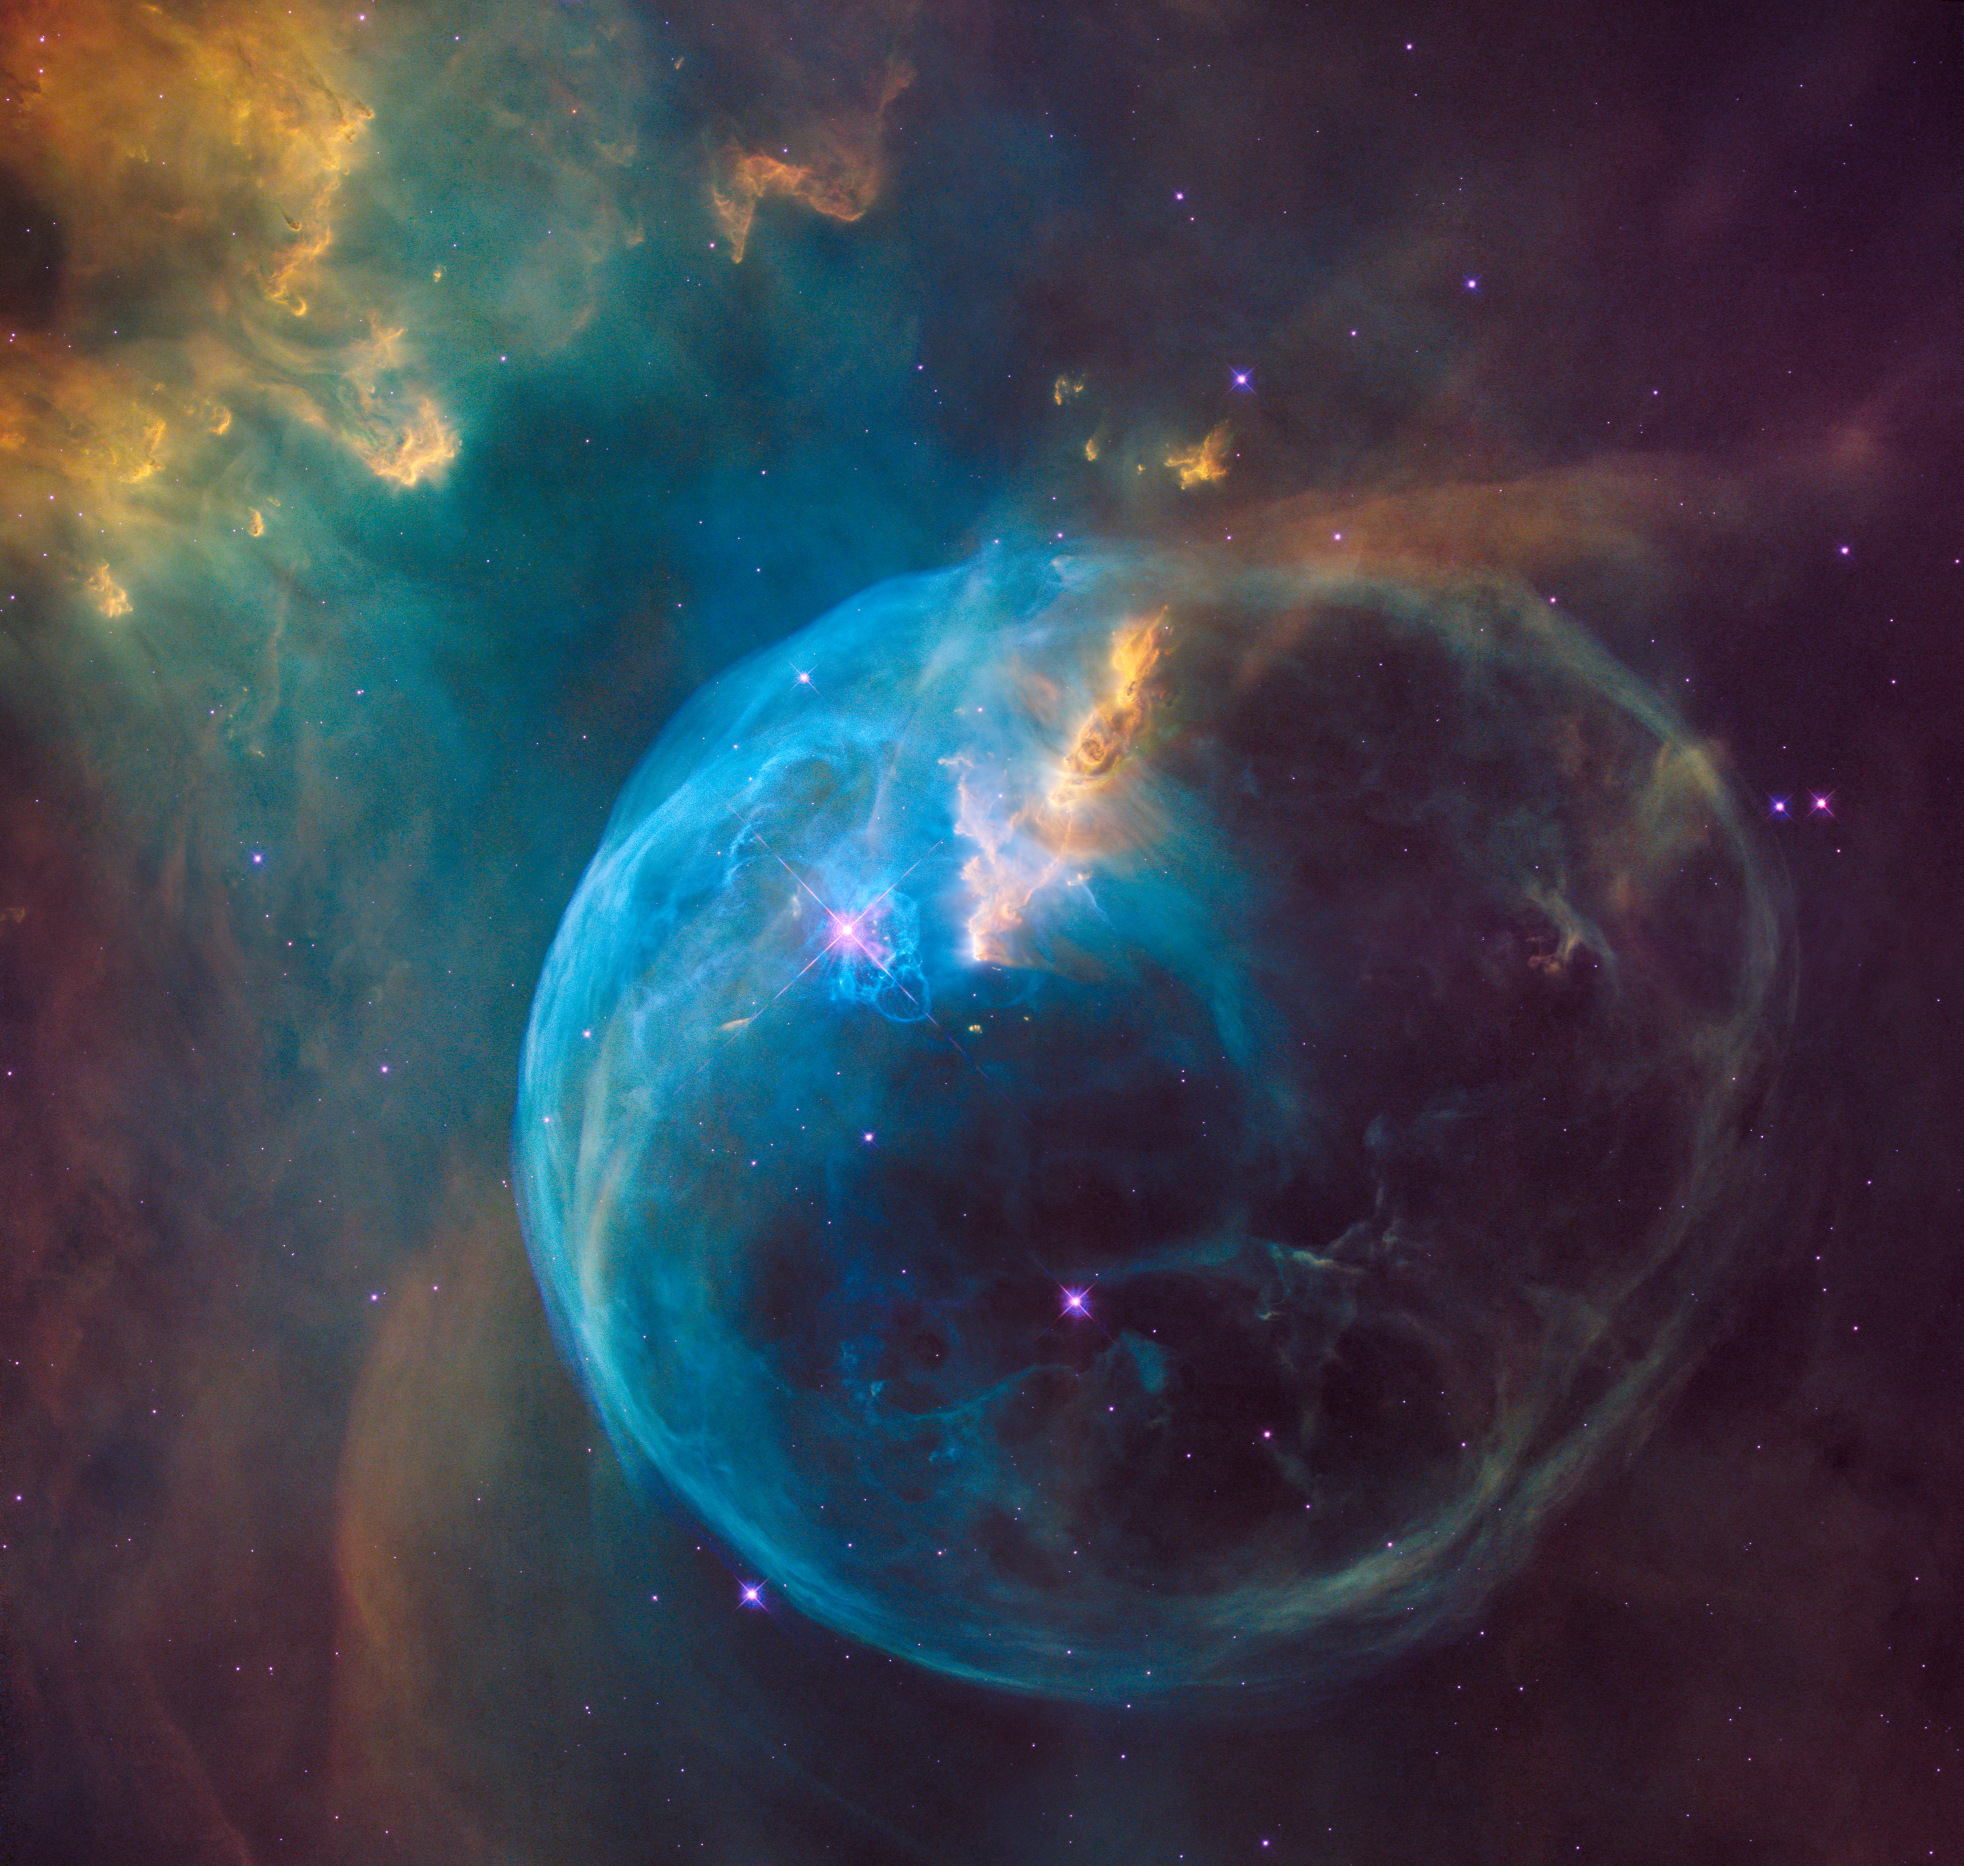 The Bubble Nebula, also known as NGC 7653, is an emission nebula located 8,000 light-years away in the constellation Cassiopeia. This stunning new image was observed by the NASA/ESA Hubble Space Telescope to celebrate its 26th year in space. Image credit: NASA, ESA, Hubble Heritage Team.